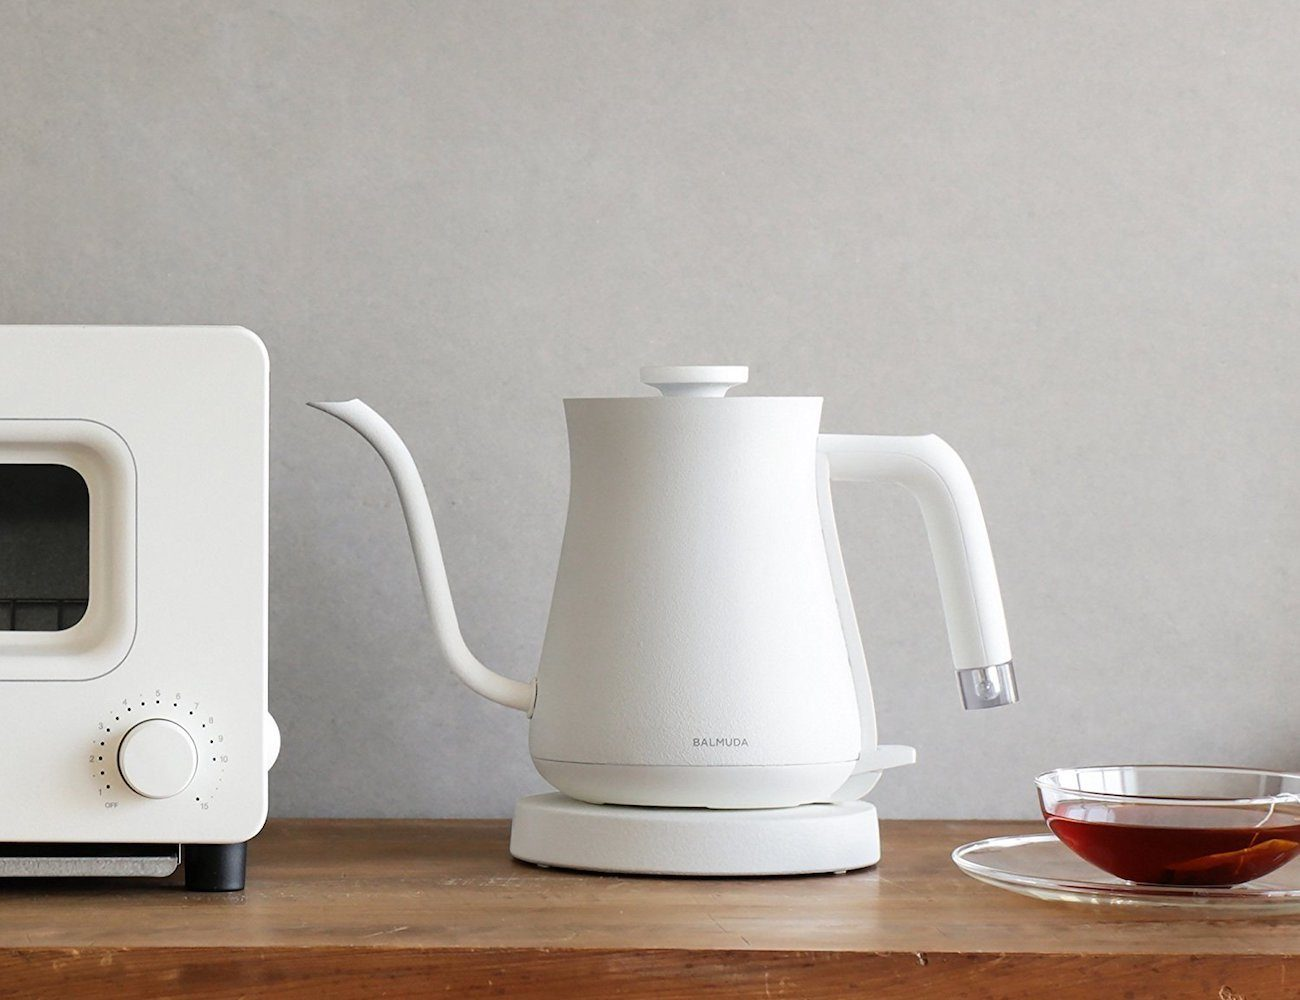 The Pot Electric Kettle by BALMUDA